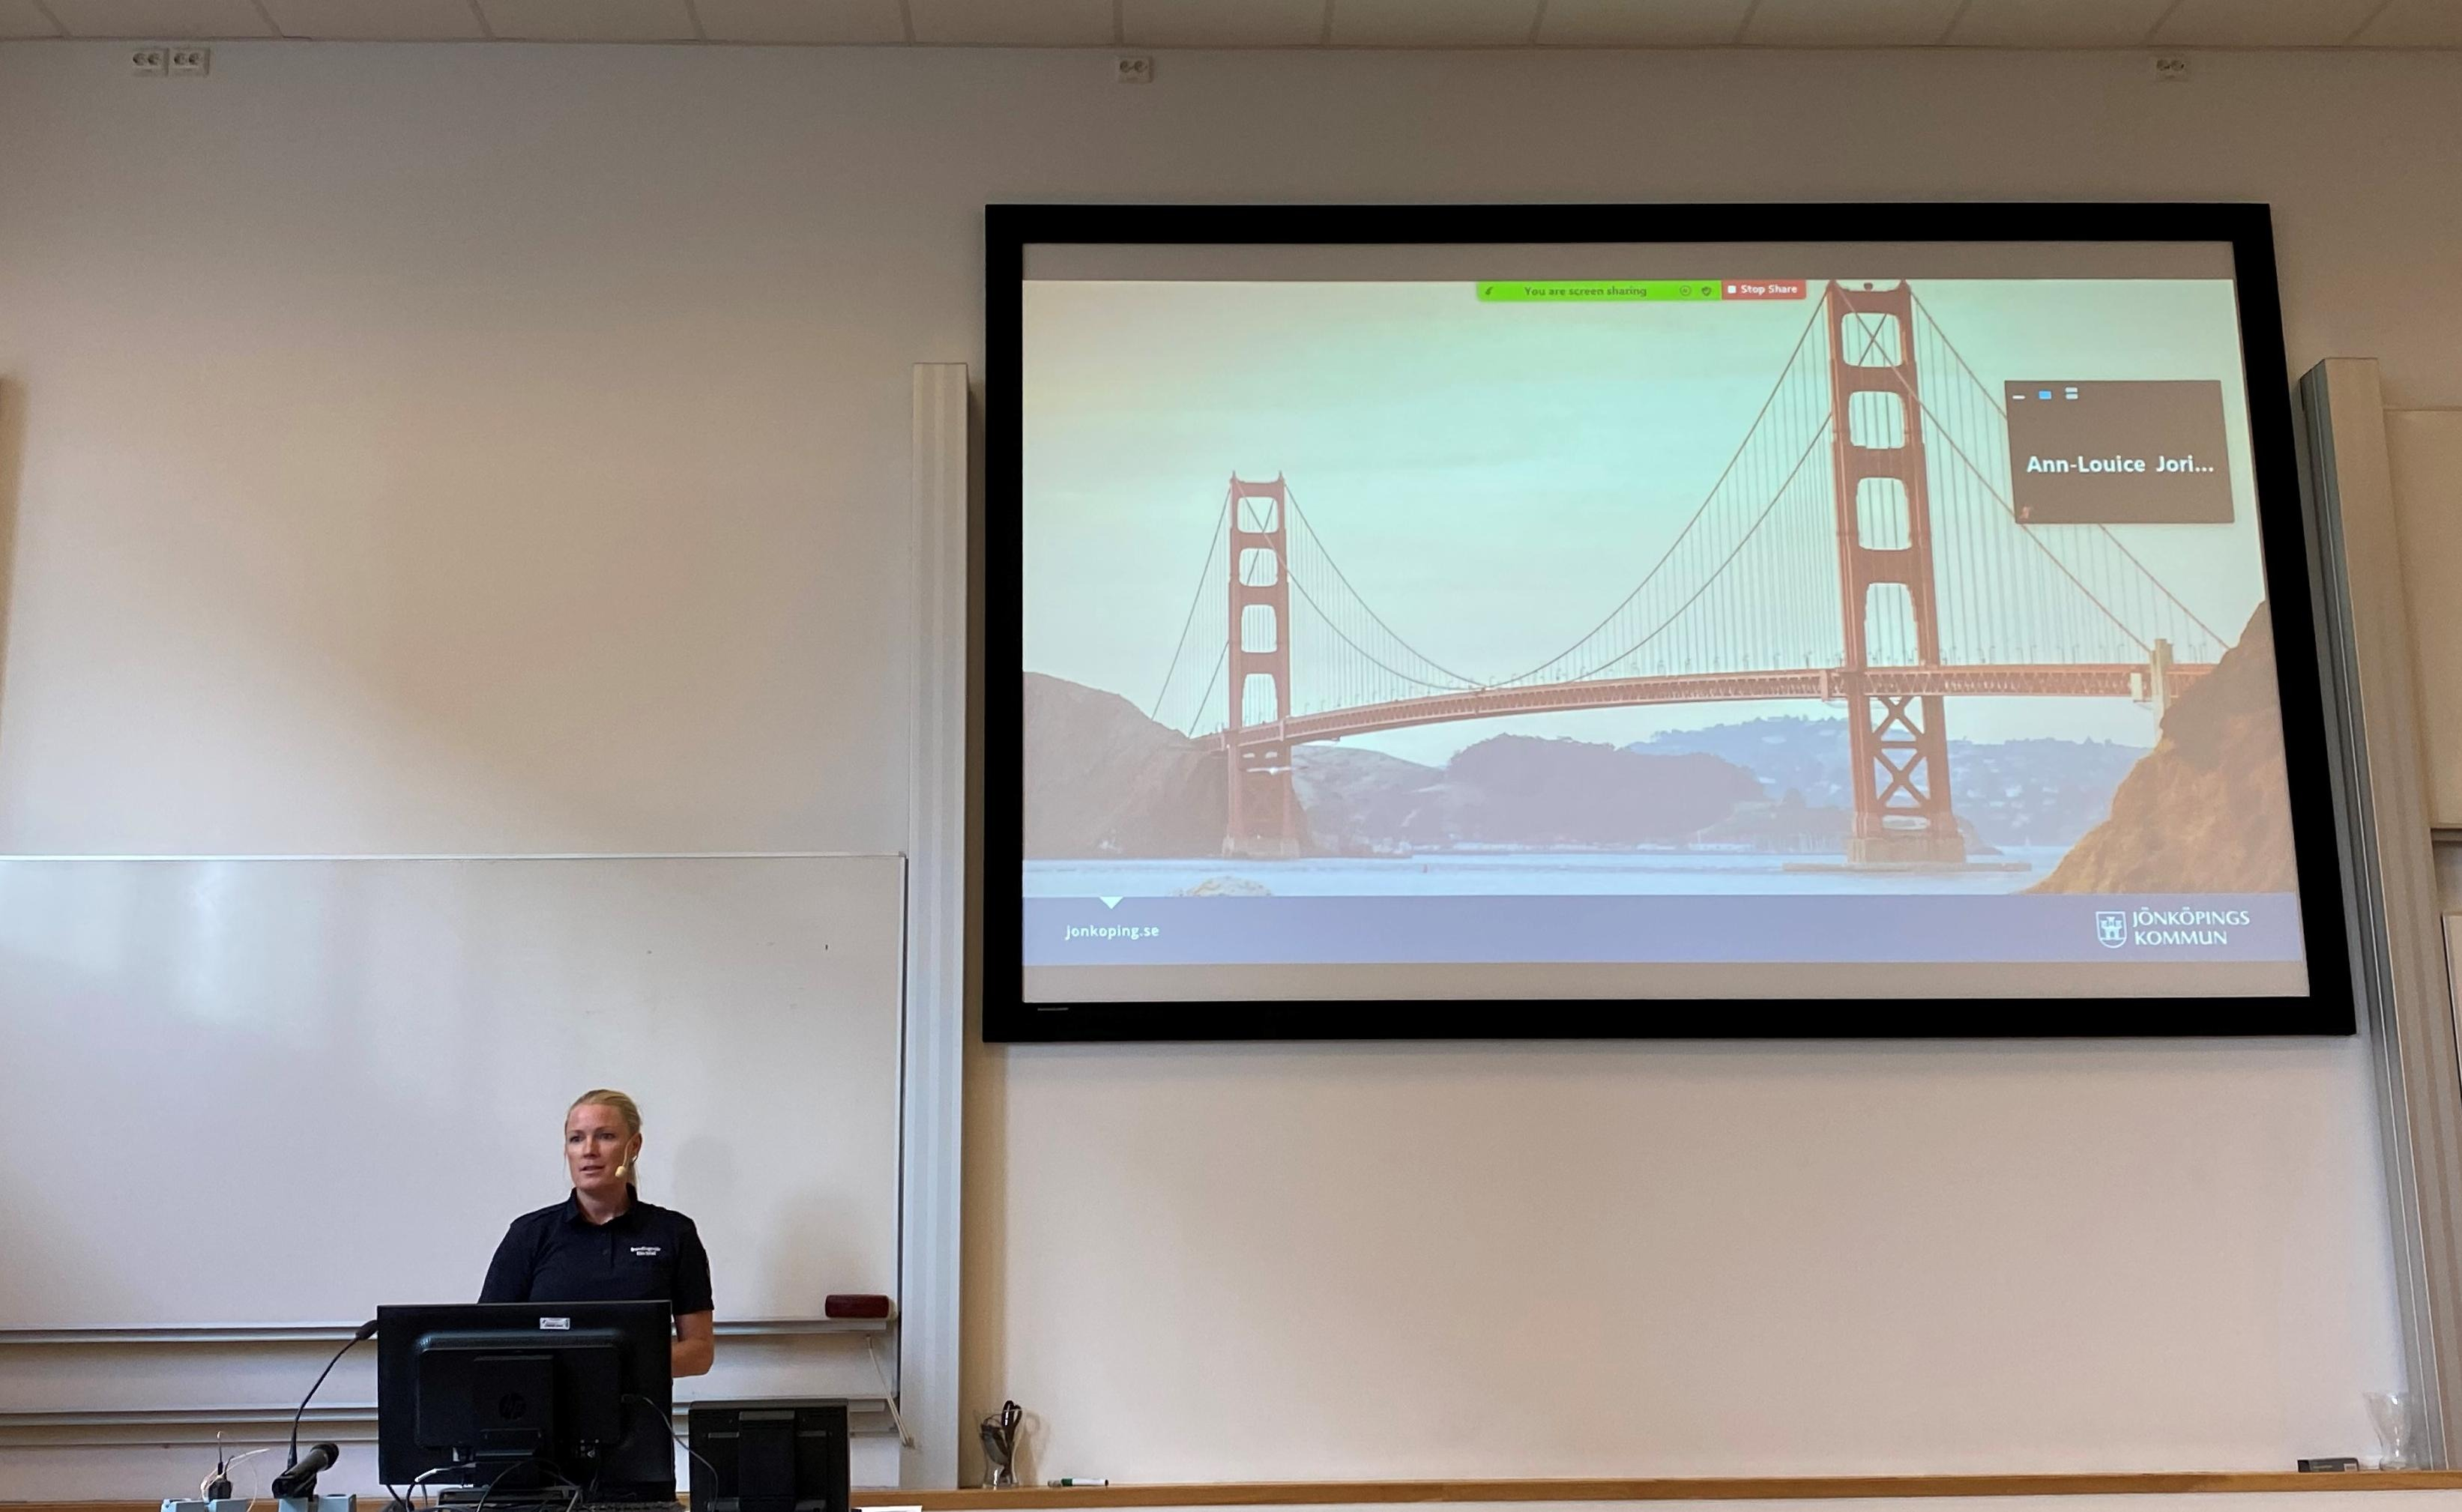 Elin Isfall, presenting and showing an image of the Golden Gate bridge in San Fransisco on the screen.